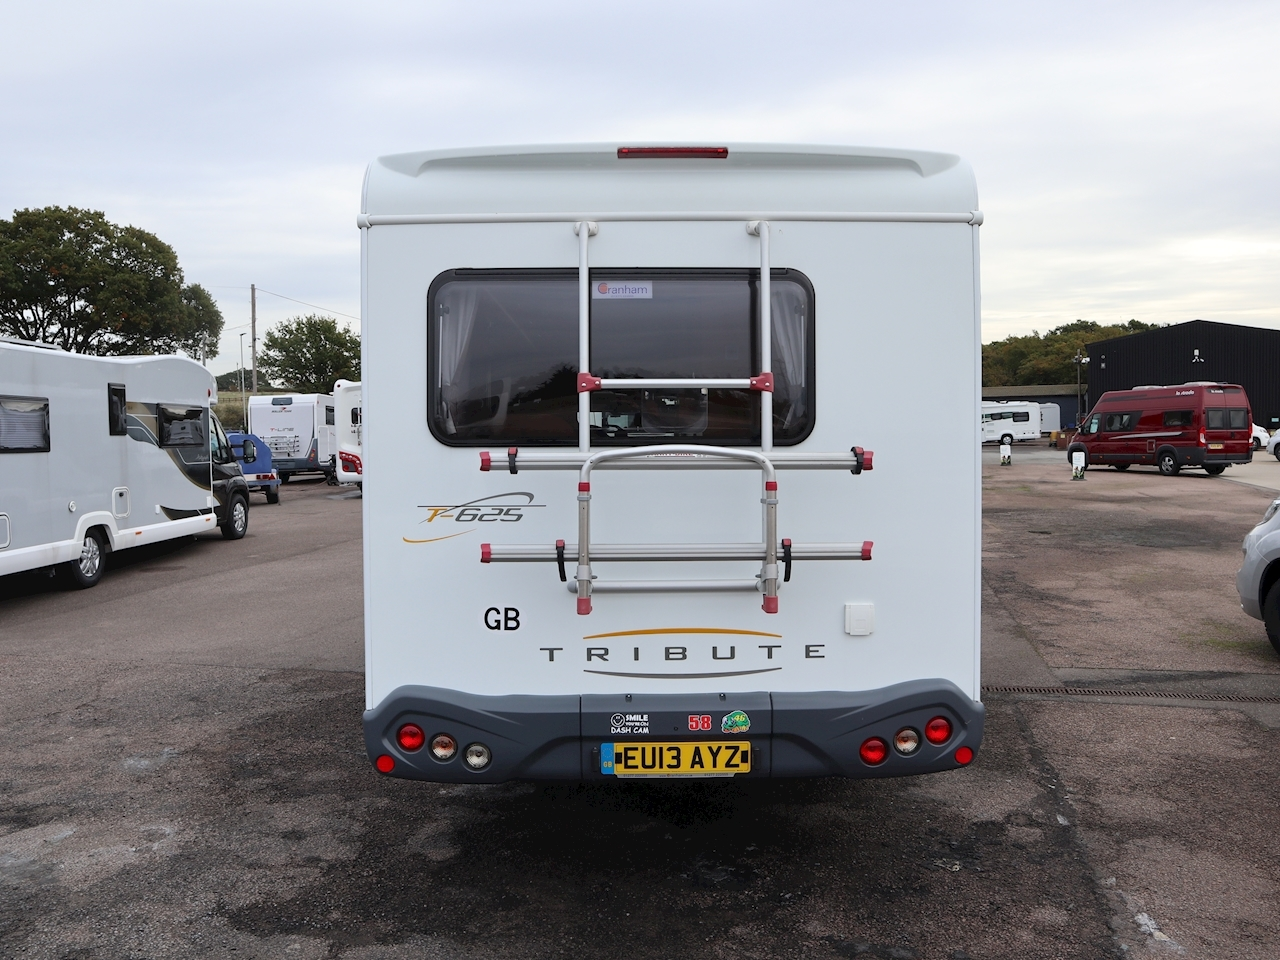 Ford Auto Trail Tribute T 625 - Large 3